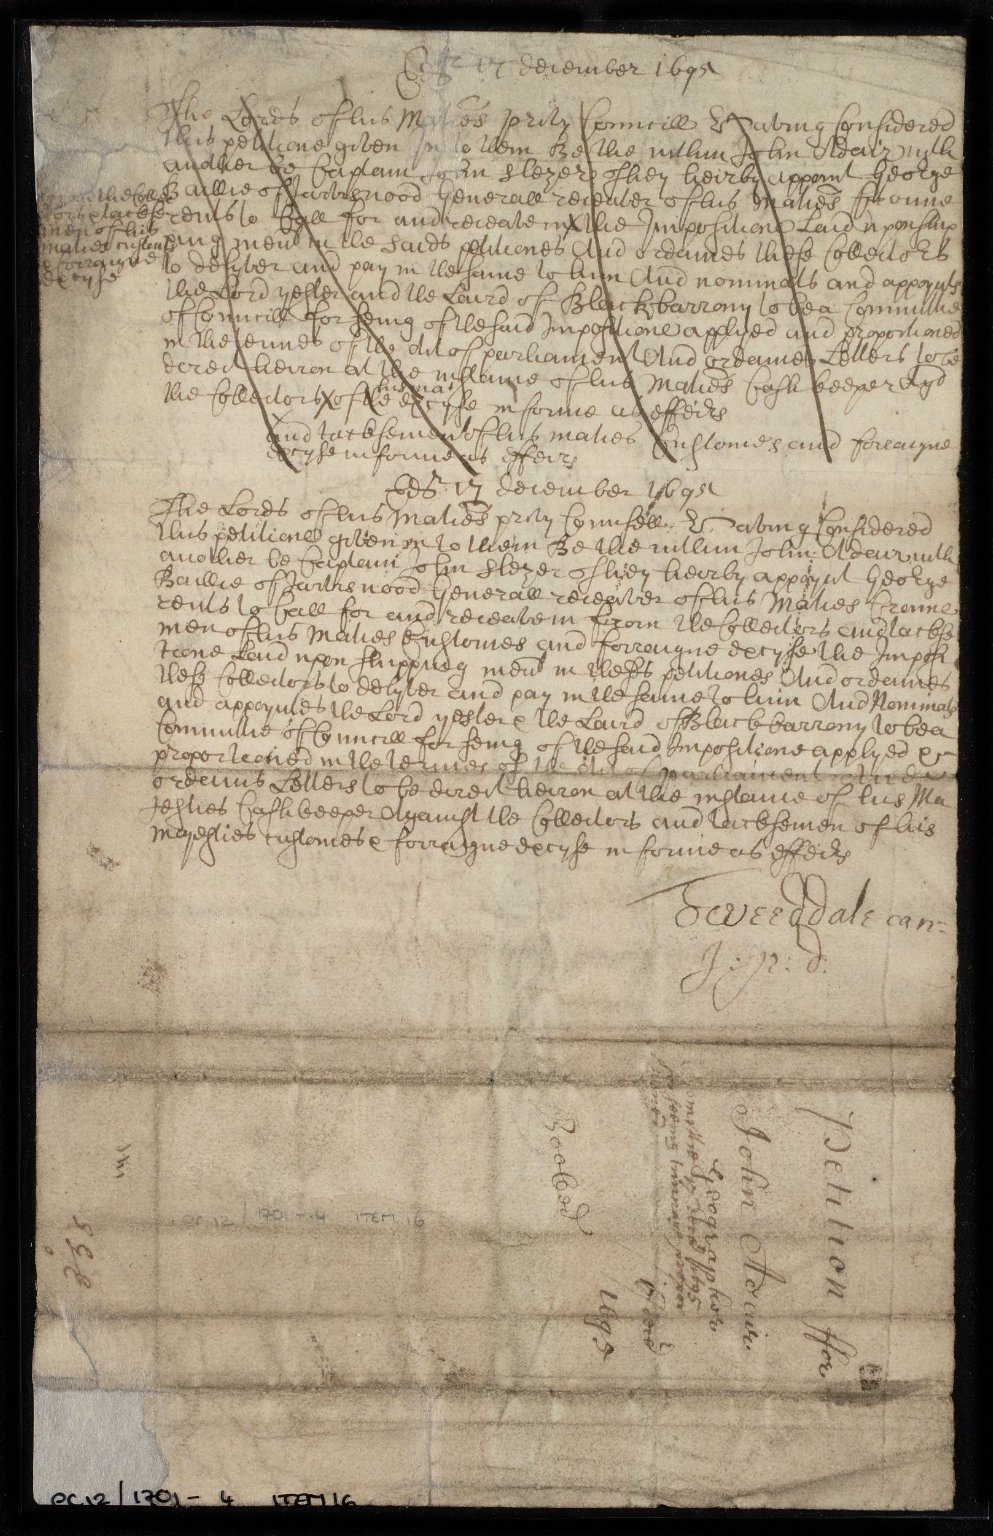 The Petition of John Adair Geographer [to the Privy Council] [2 of 2]